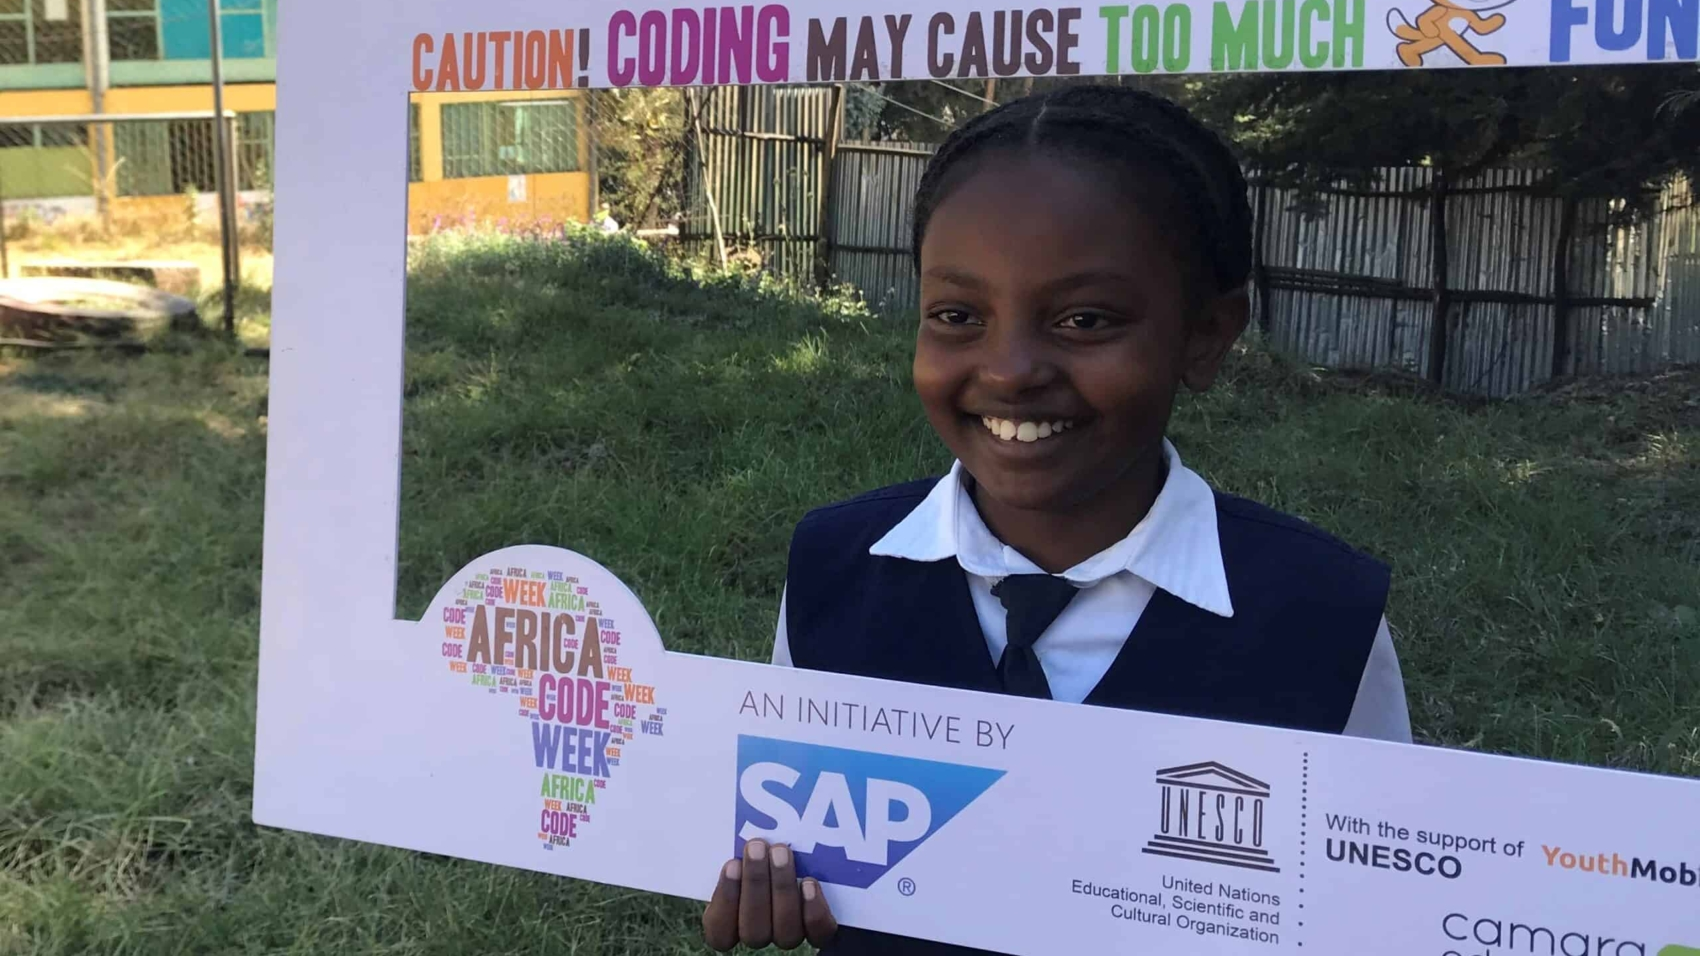 Soliyana, Africa Code Week winner